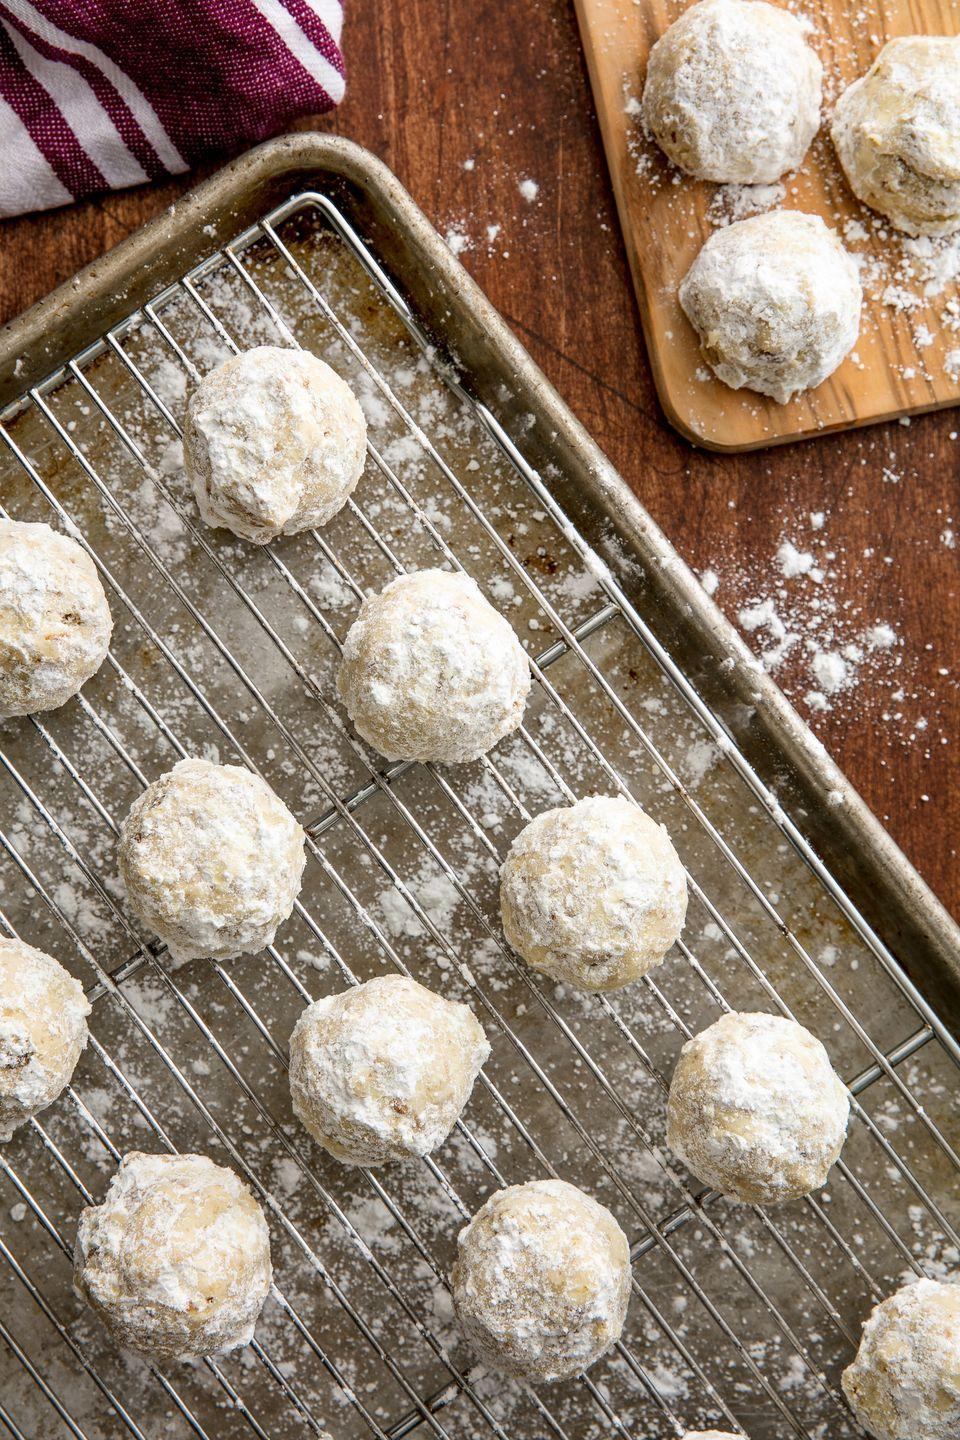 """<p>You can have a snowball fight over these cookies!</p><p>Get the recipe from <a href=""""https://www.delish.com/cooking/recipe-ideas/recipes/a56364/best-snowball-cookies-recipe/"""" rel=""""nofollow noopener"""" target=""""_blank"""" data-ylk=""""slk:Delish"""" class=""""link rapid-noclick-resp"""">Delish</a>. </p>"""